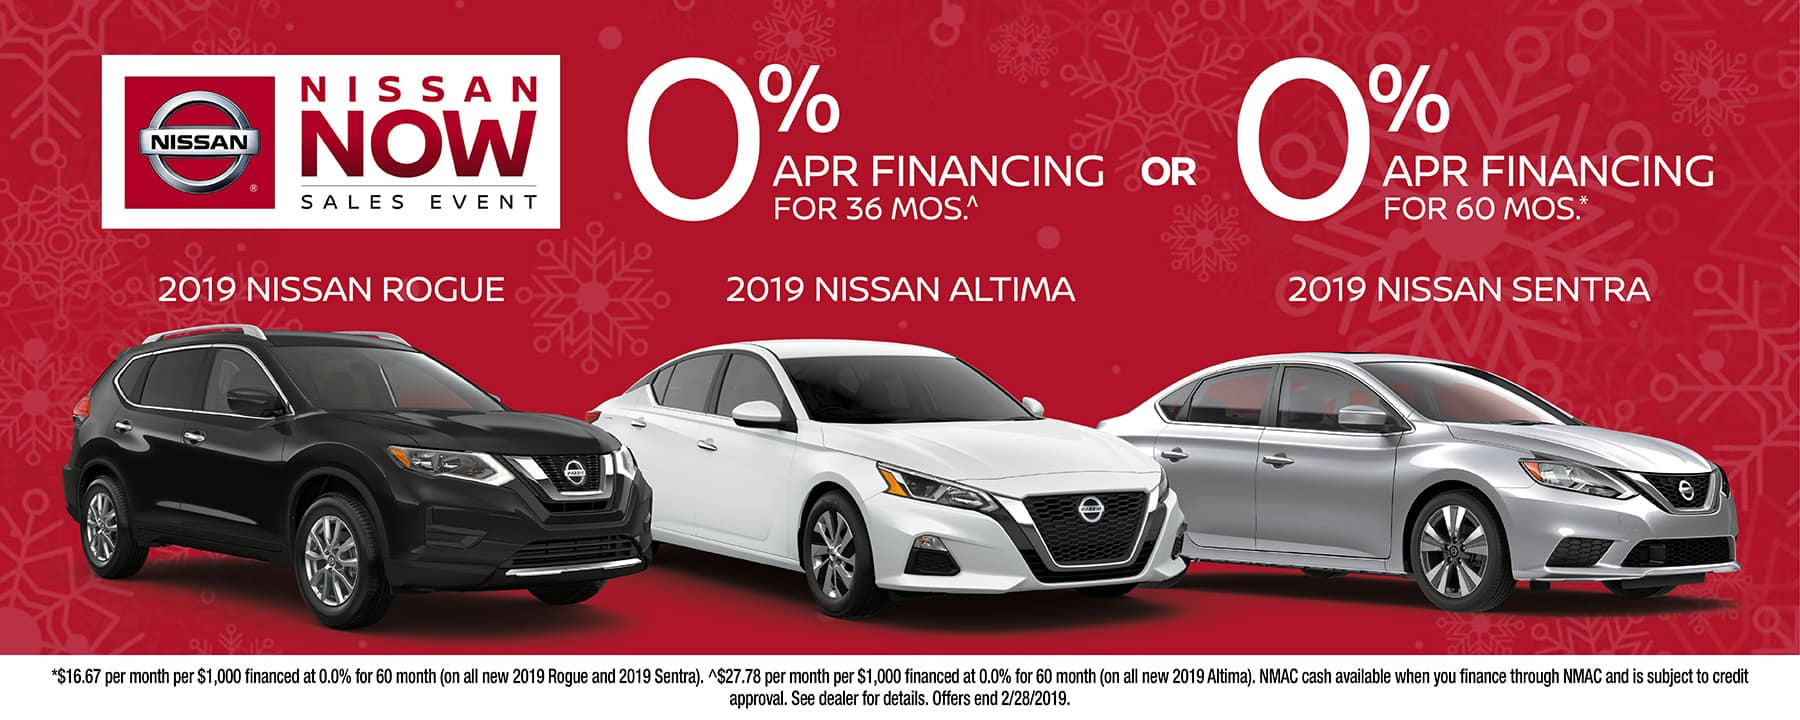 Take advantage of 0% APR Financing on a 2019 Nissan Sentra, 2019 Nissan Rogue, or 2019 Nissan Altima at Star Nissan!